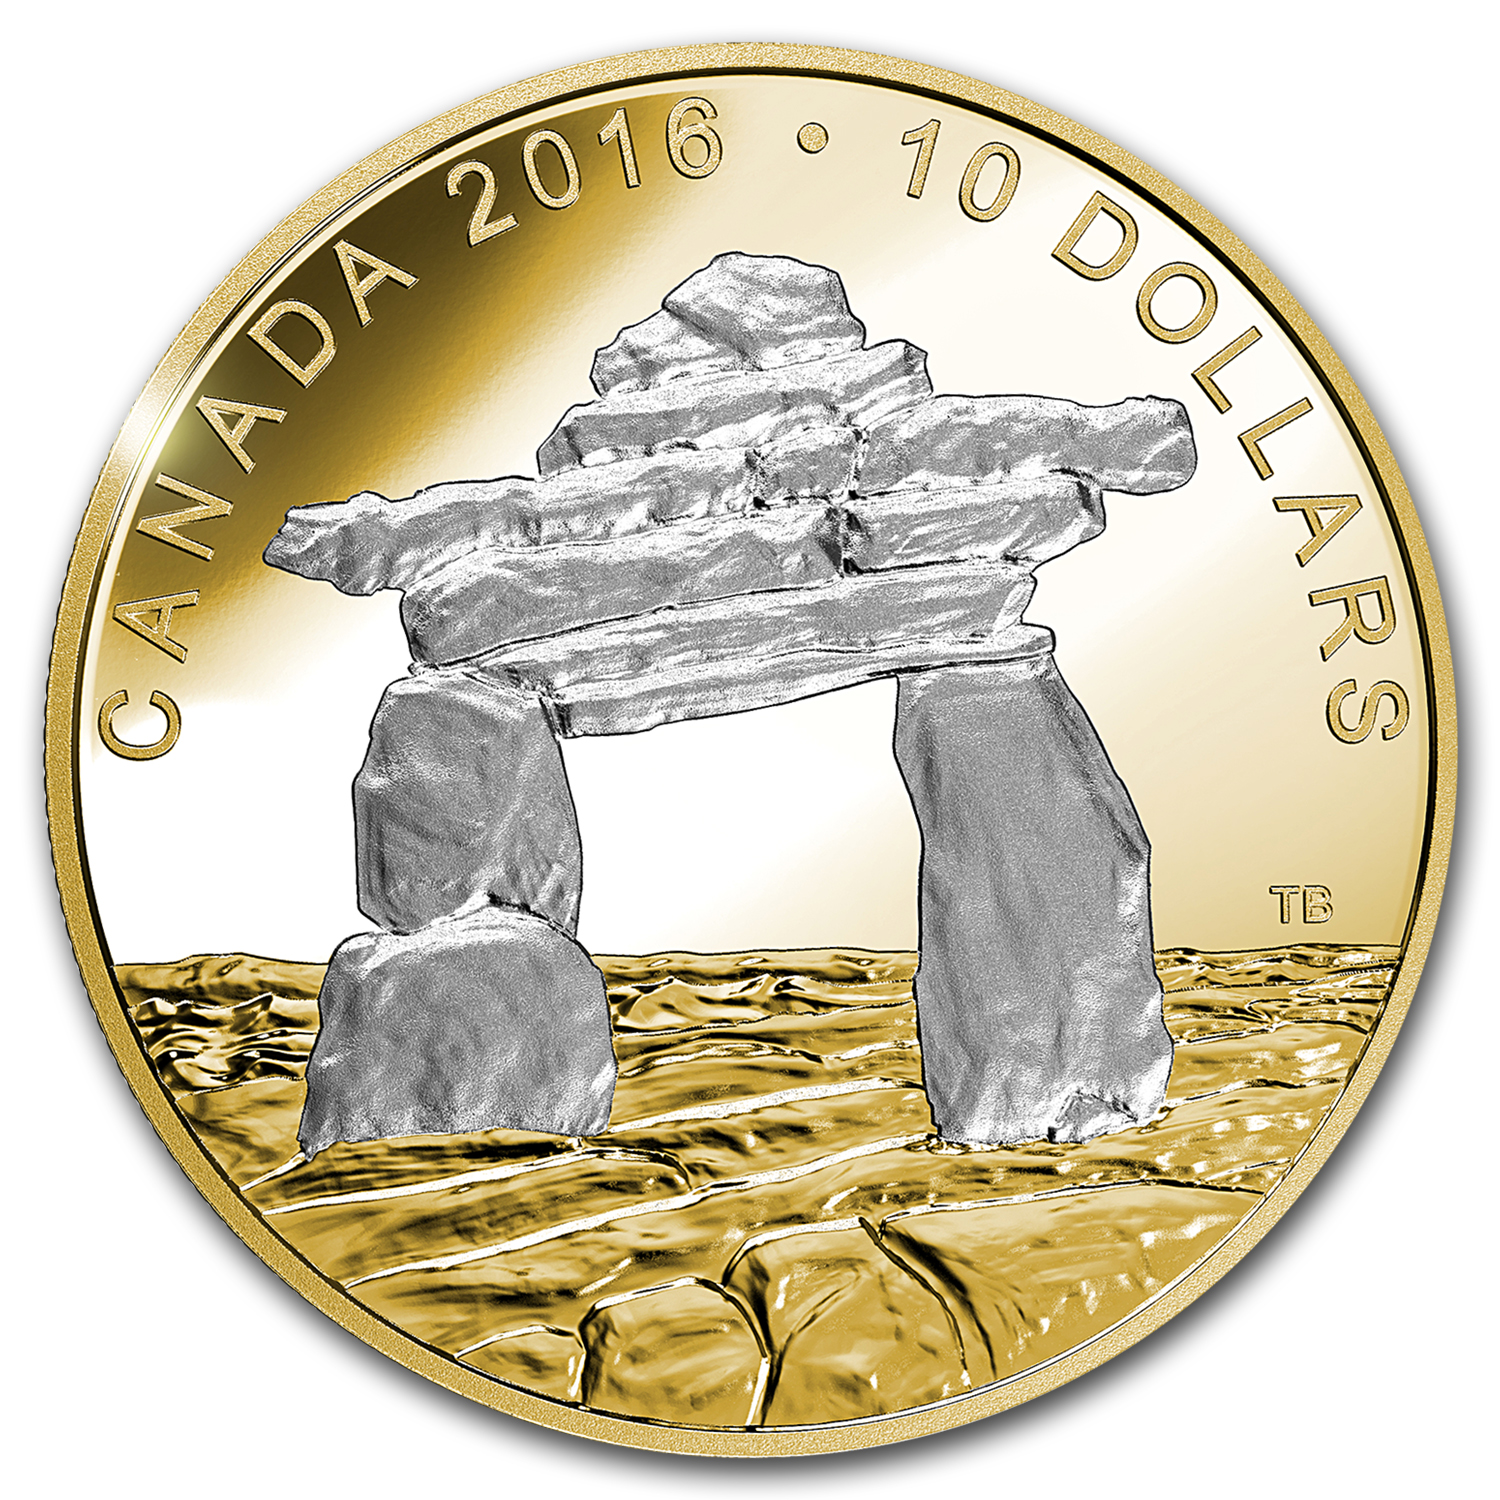 2016 Canada 1/2 oz Silver $10 Proof Iconic Canada Inukshuk